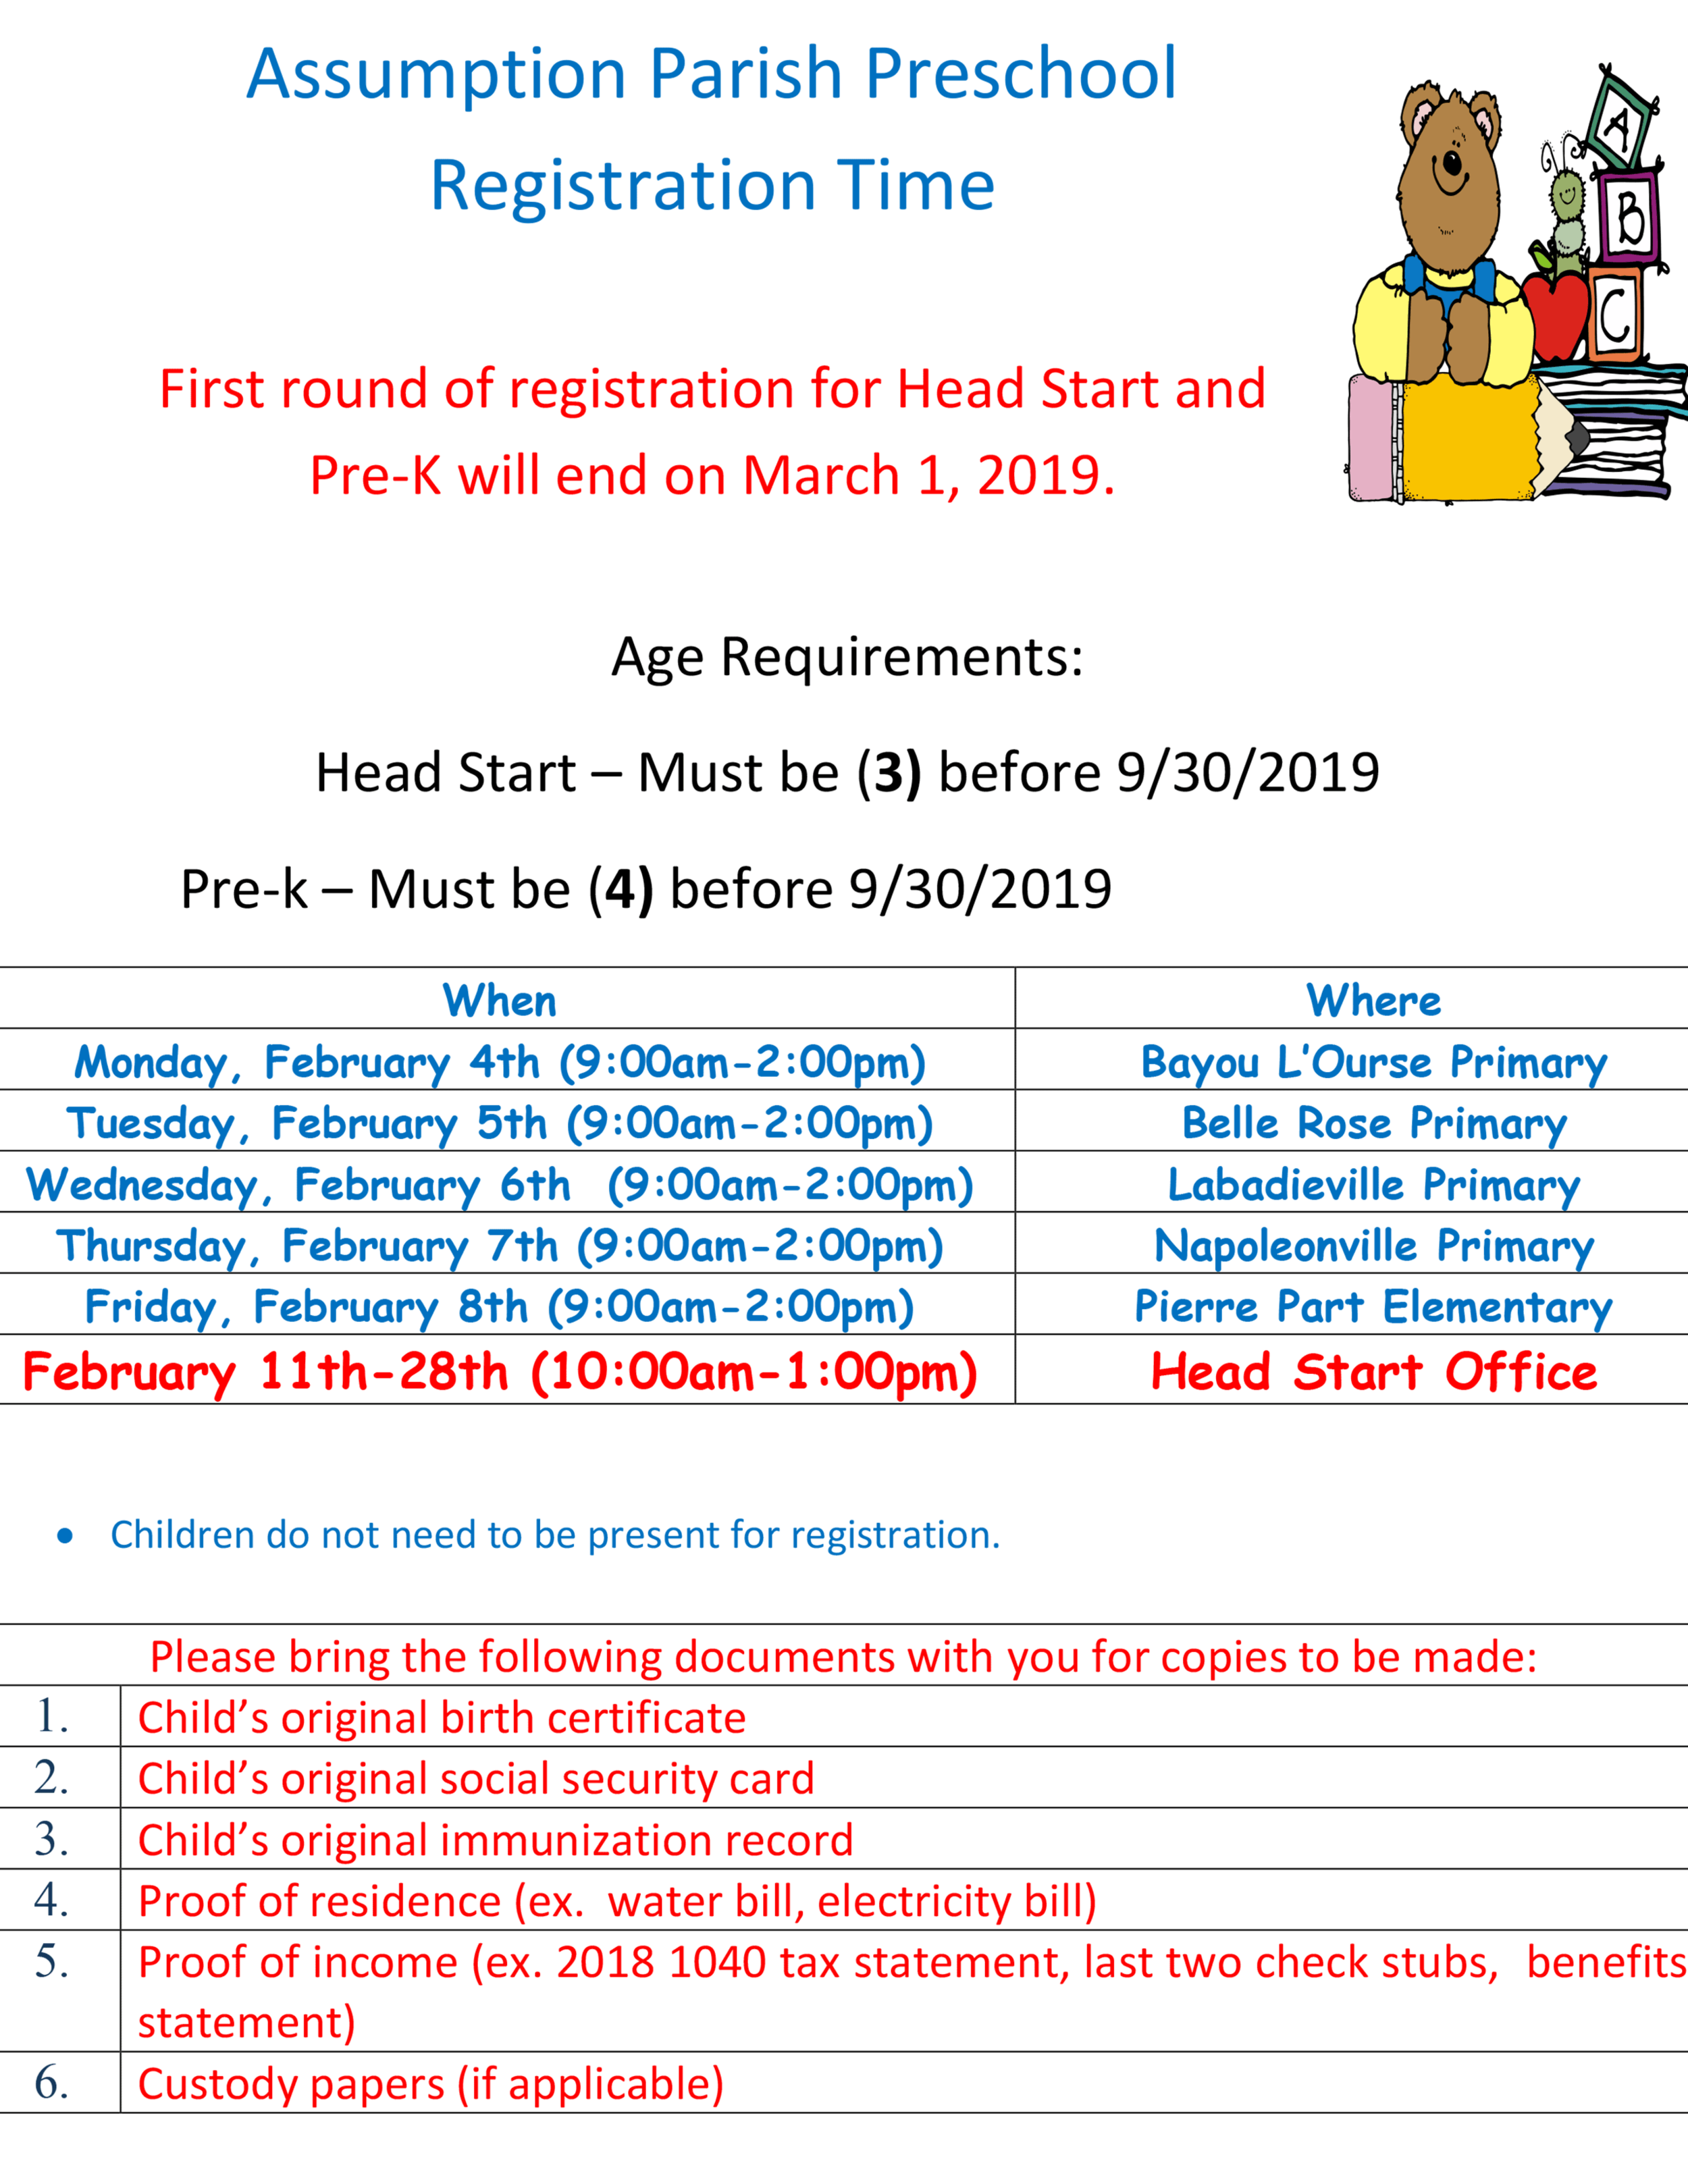 APSB-Pre-K-registration-flyer-2019-round-1-1.png